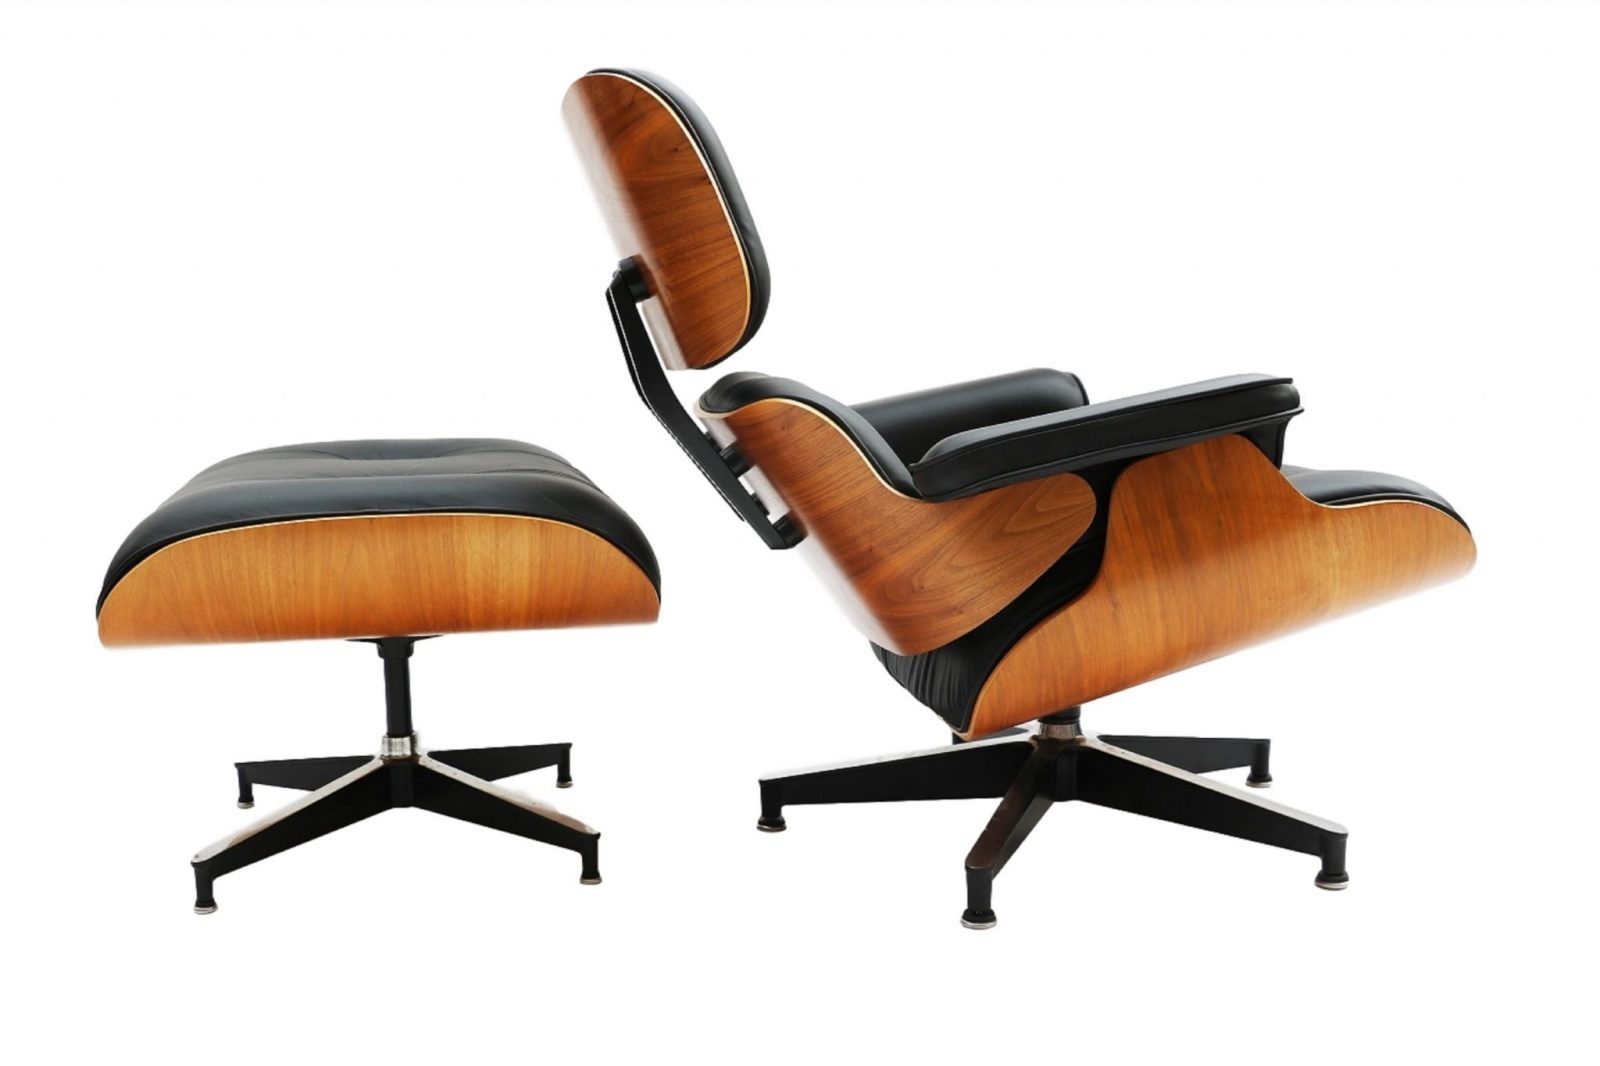 Herman miller eames lounge chair and ottoman model 670 671 - Herman miller lounge chair and ottoman ...